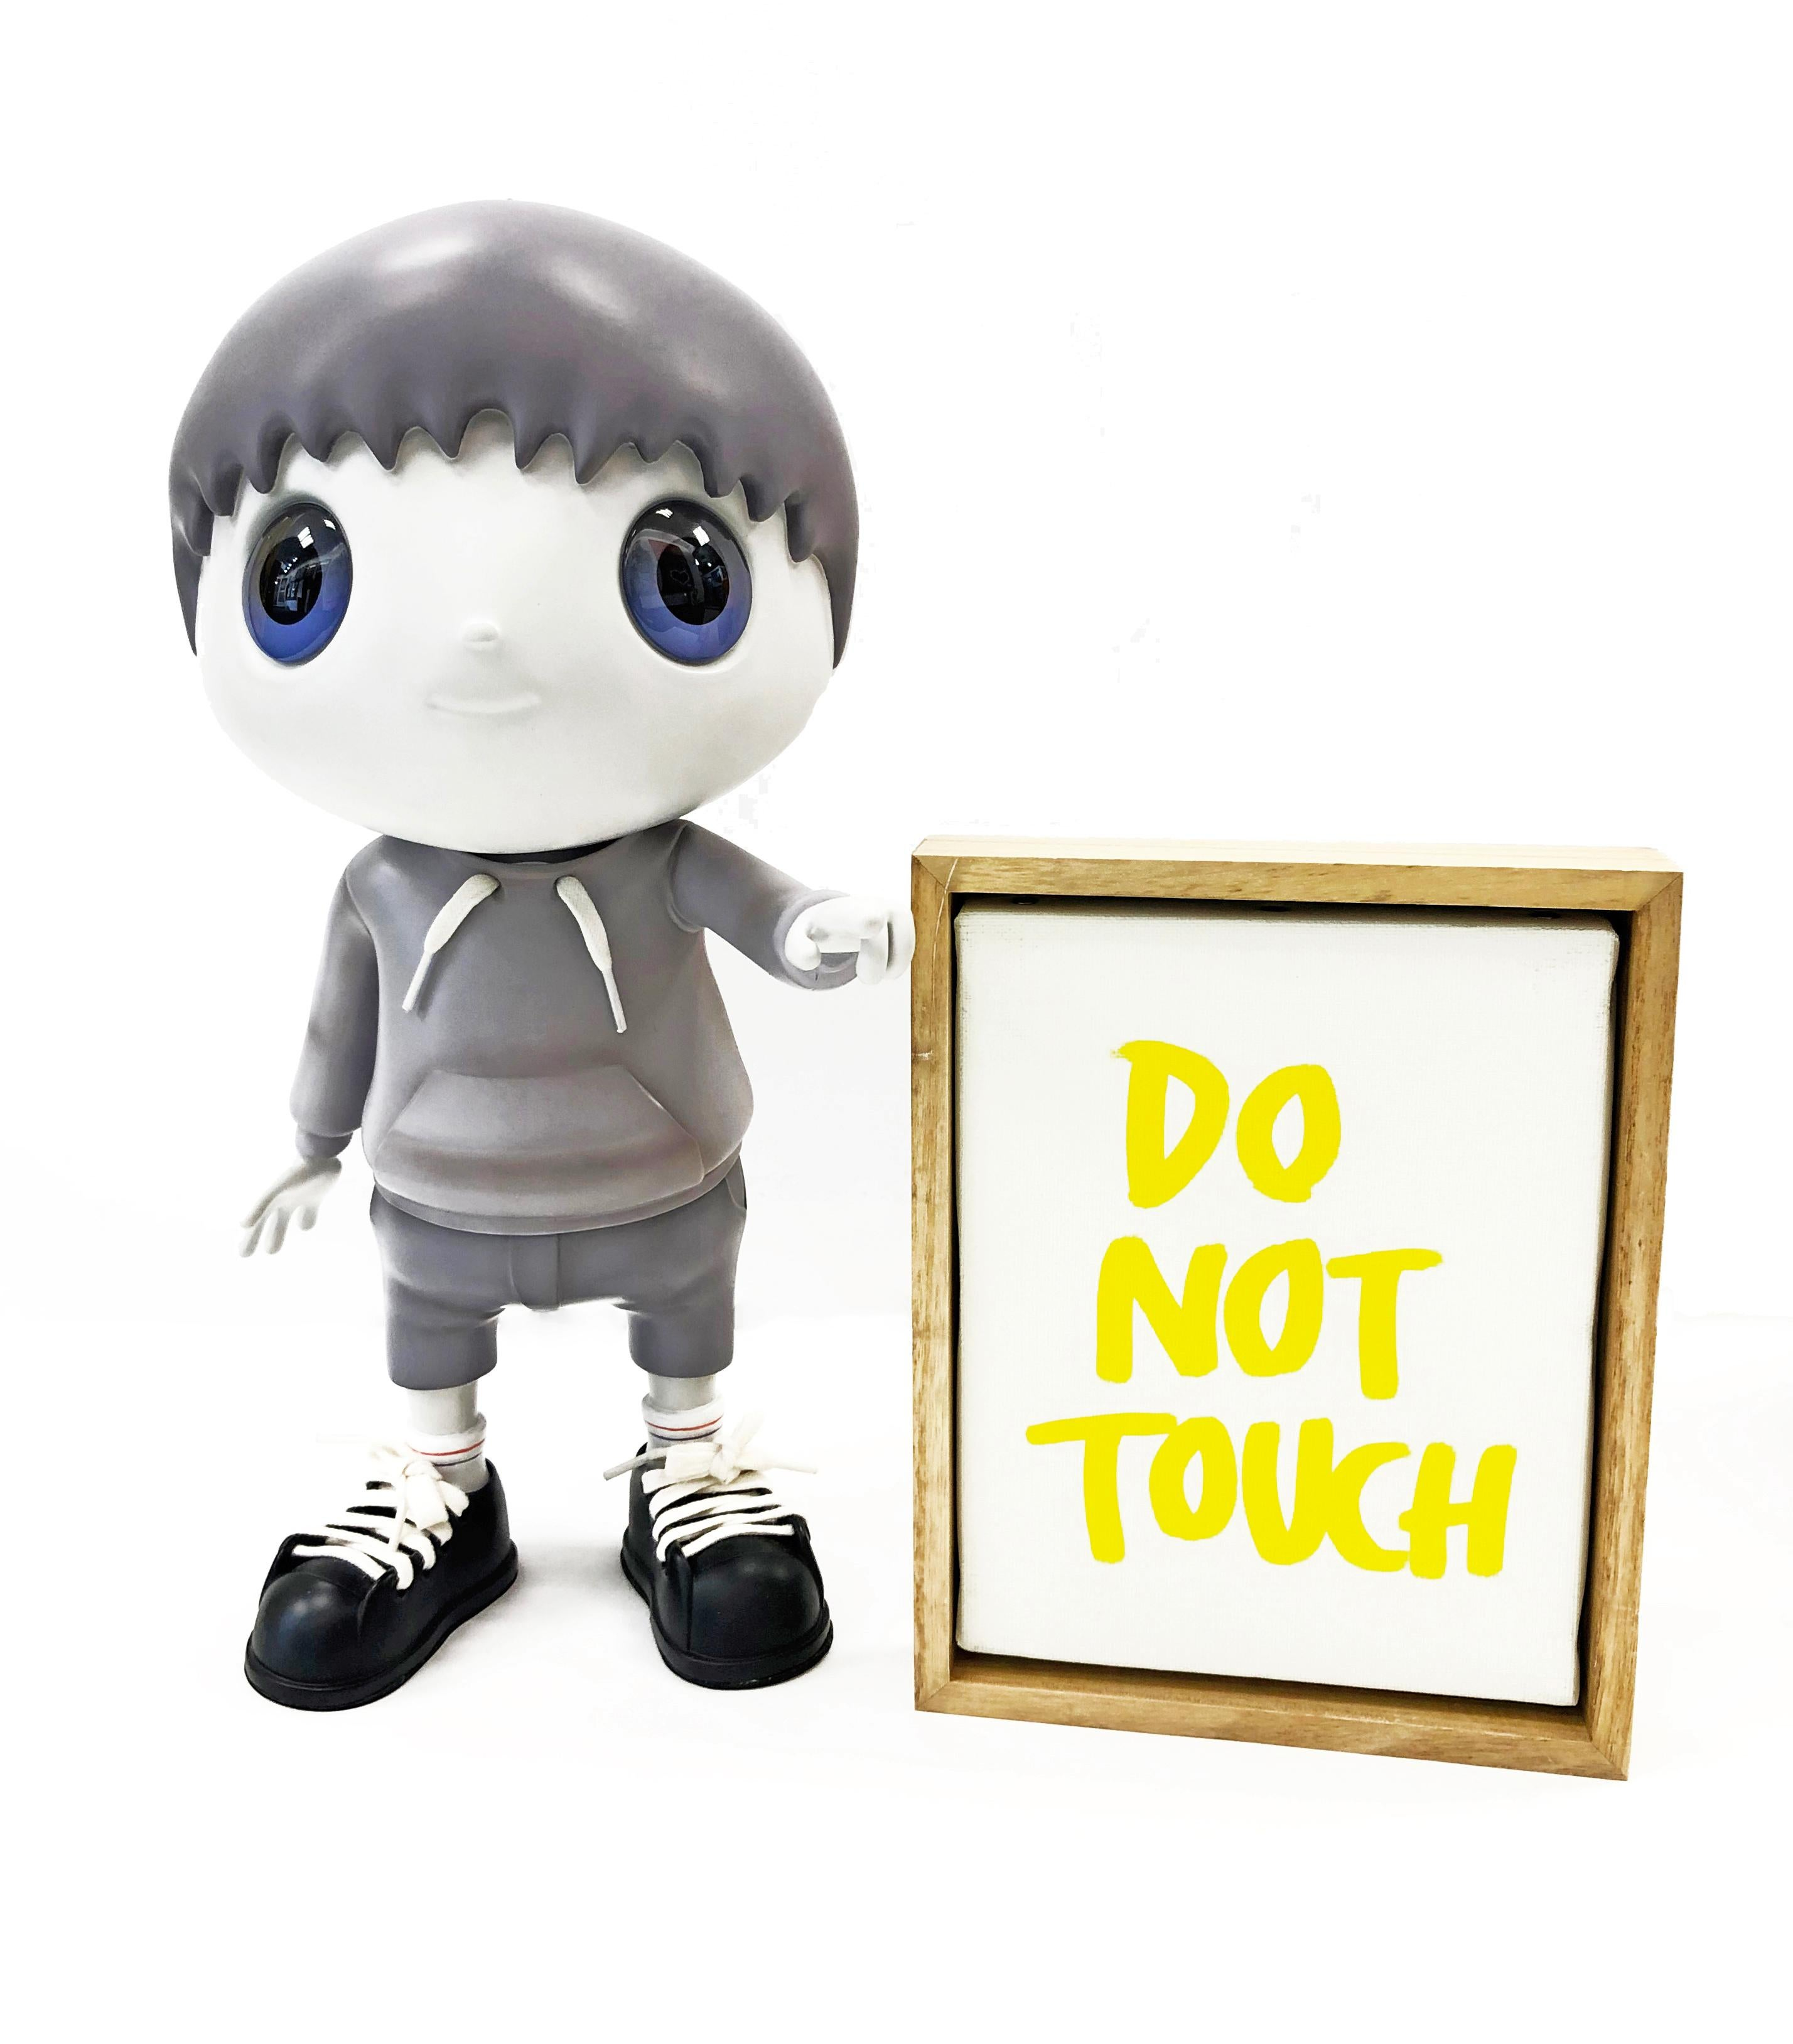 DO NOT TOUCH (GREY)